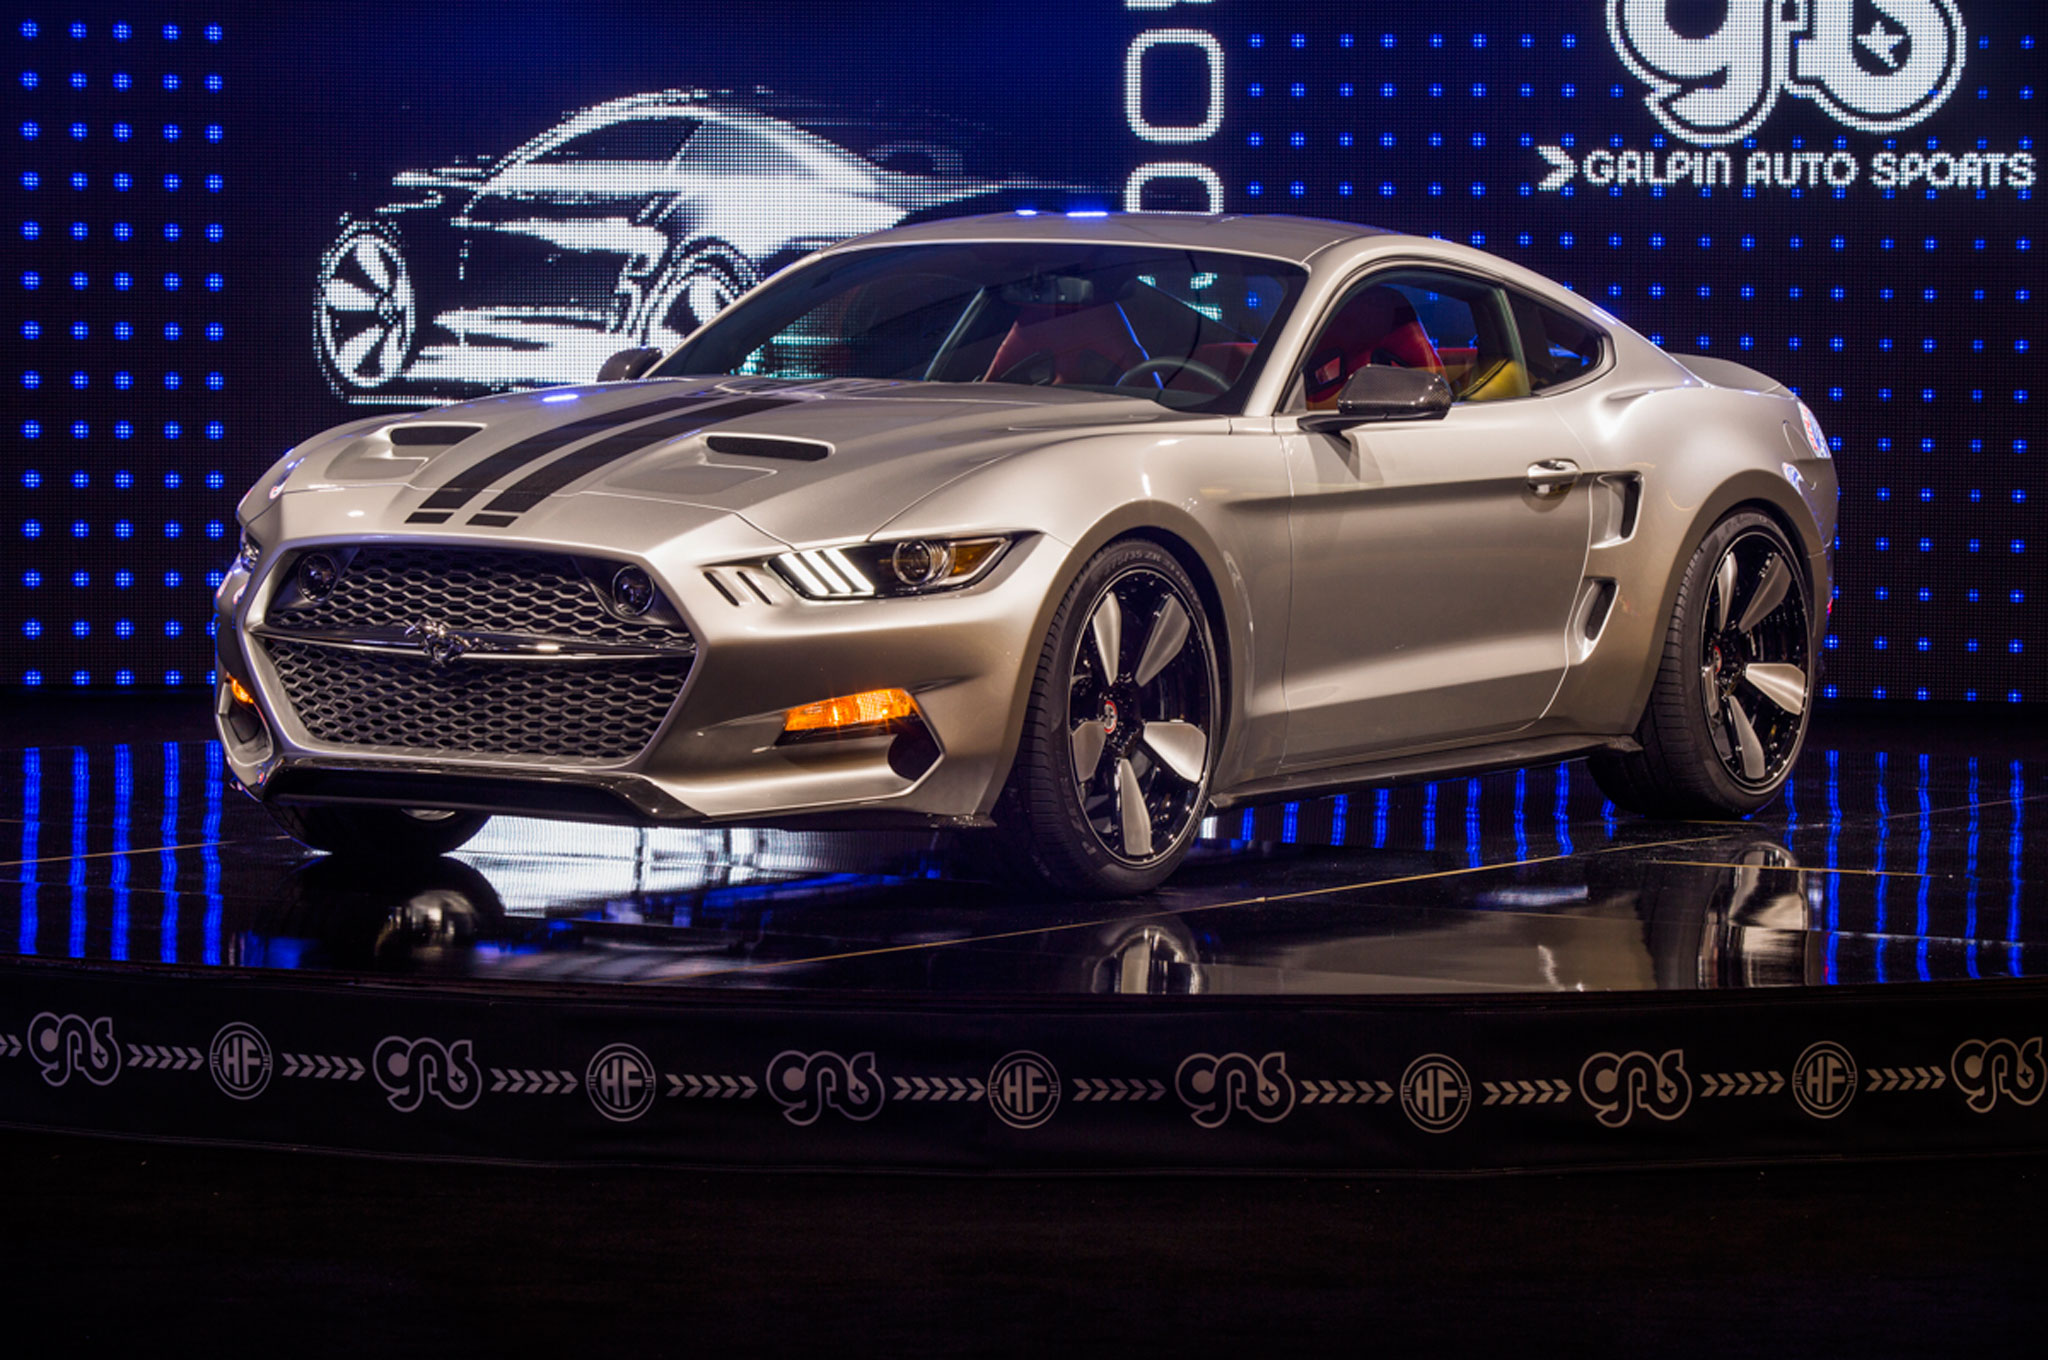 Ford Mustang Based Fisker Galpin Rocket Heading To Limited